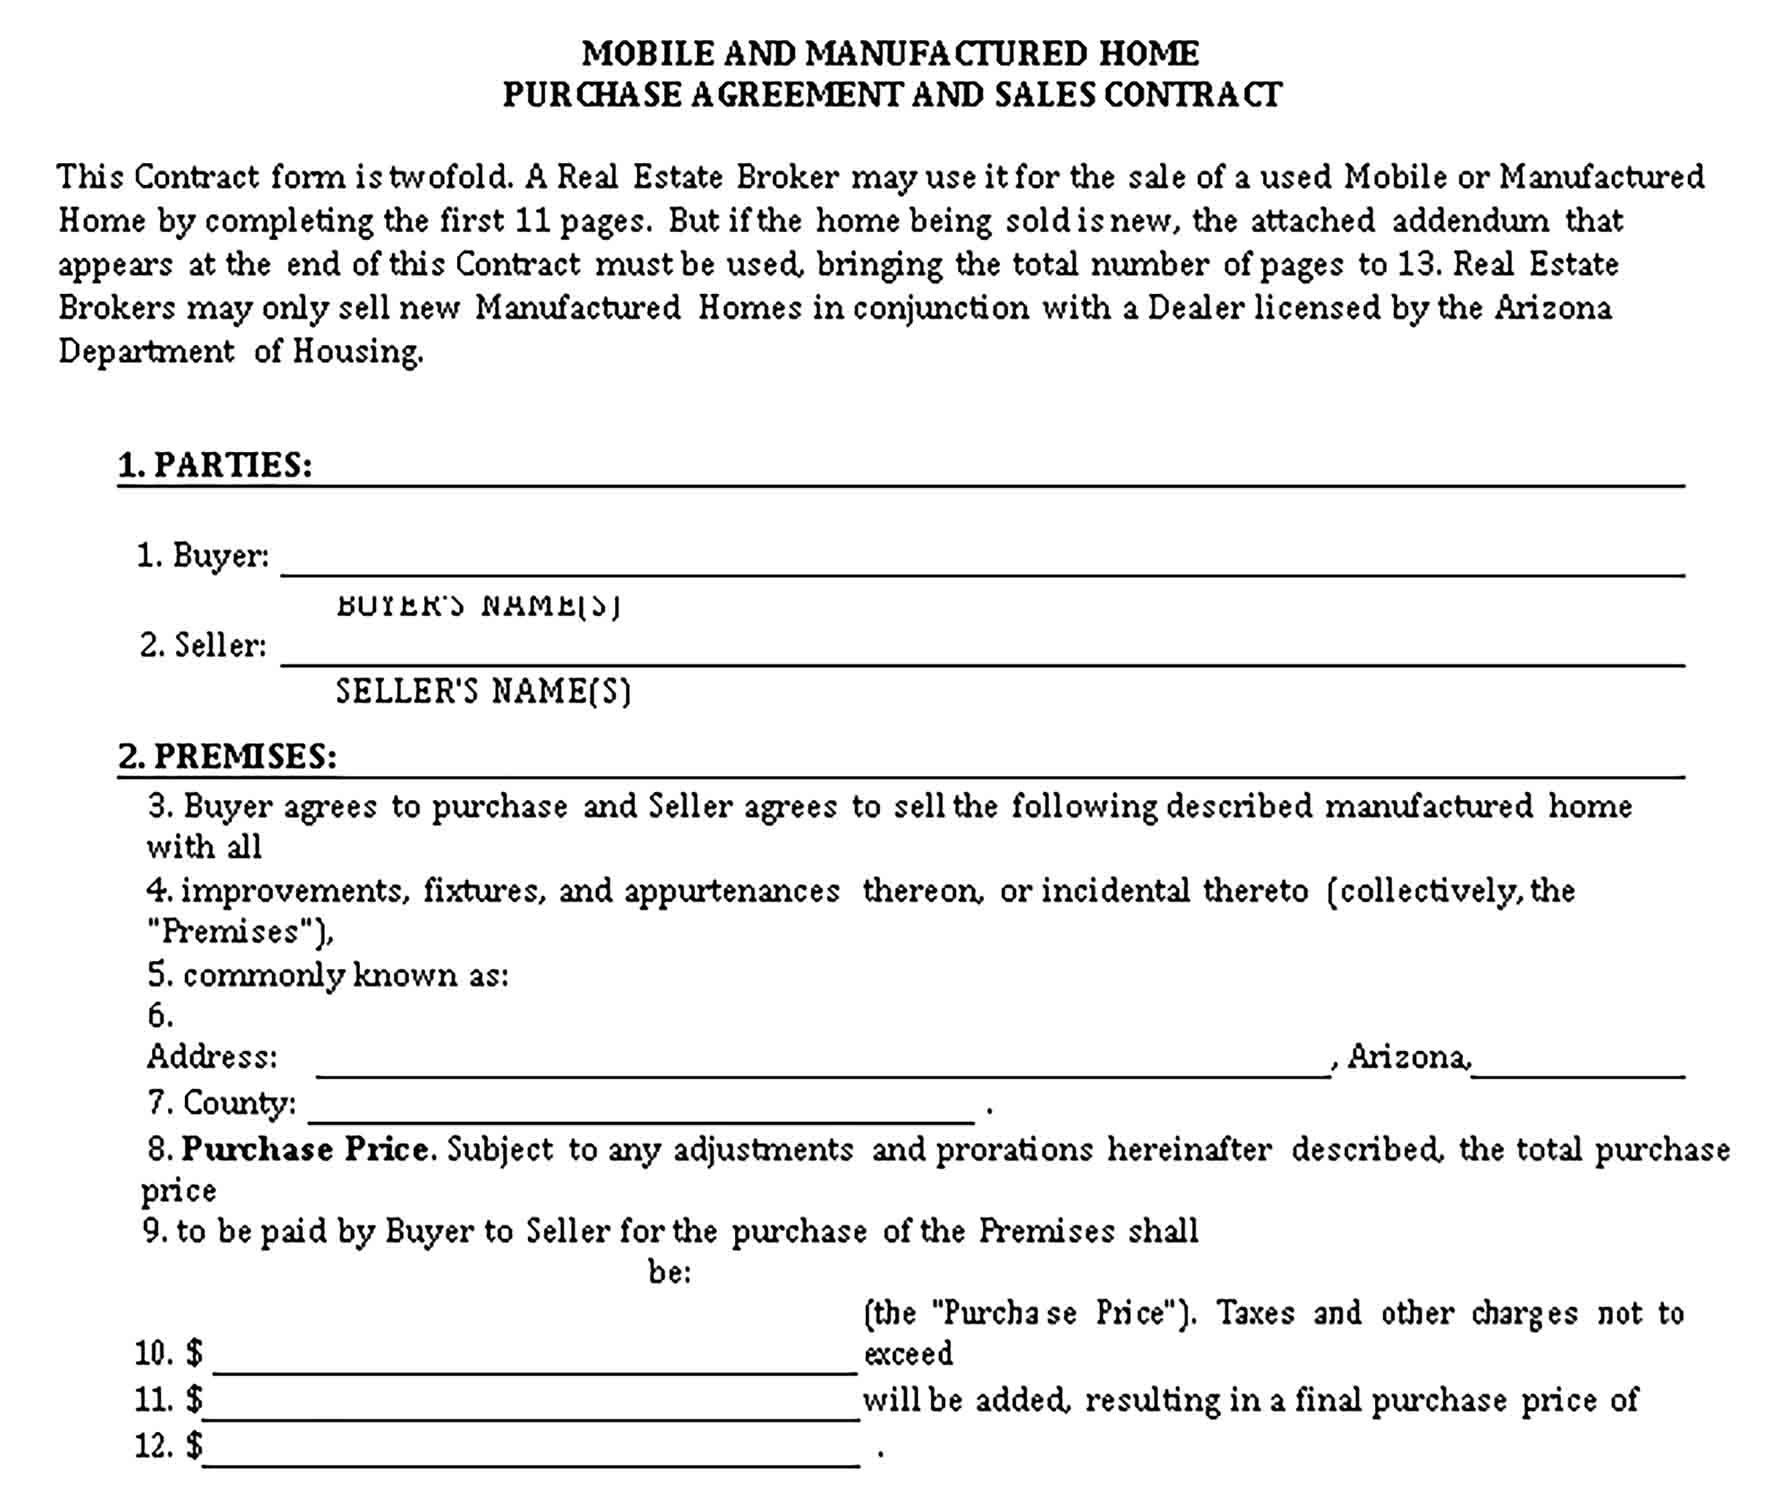 Templates Mobile and Manufactured Home Purchase Agreement Sample